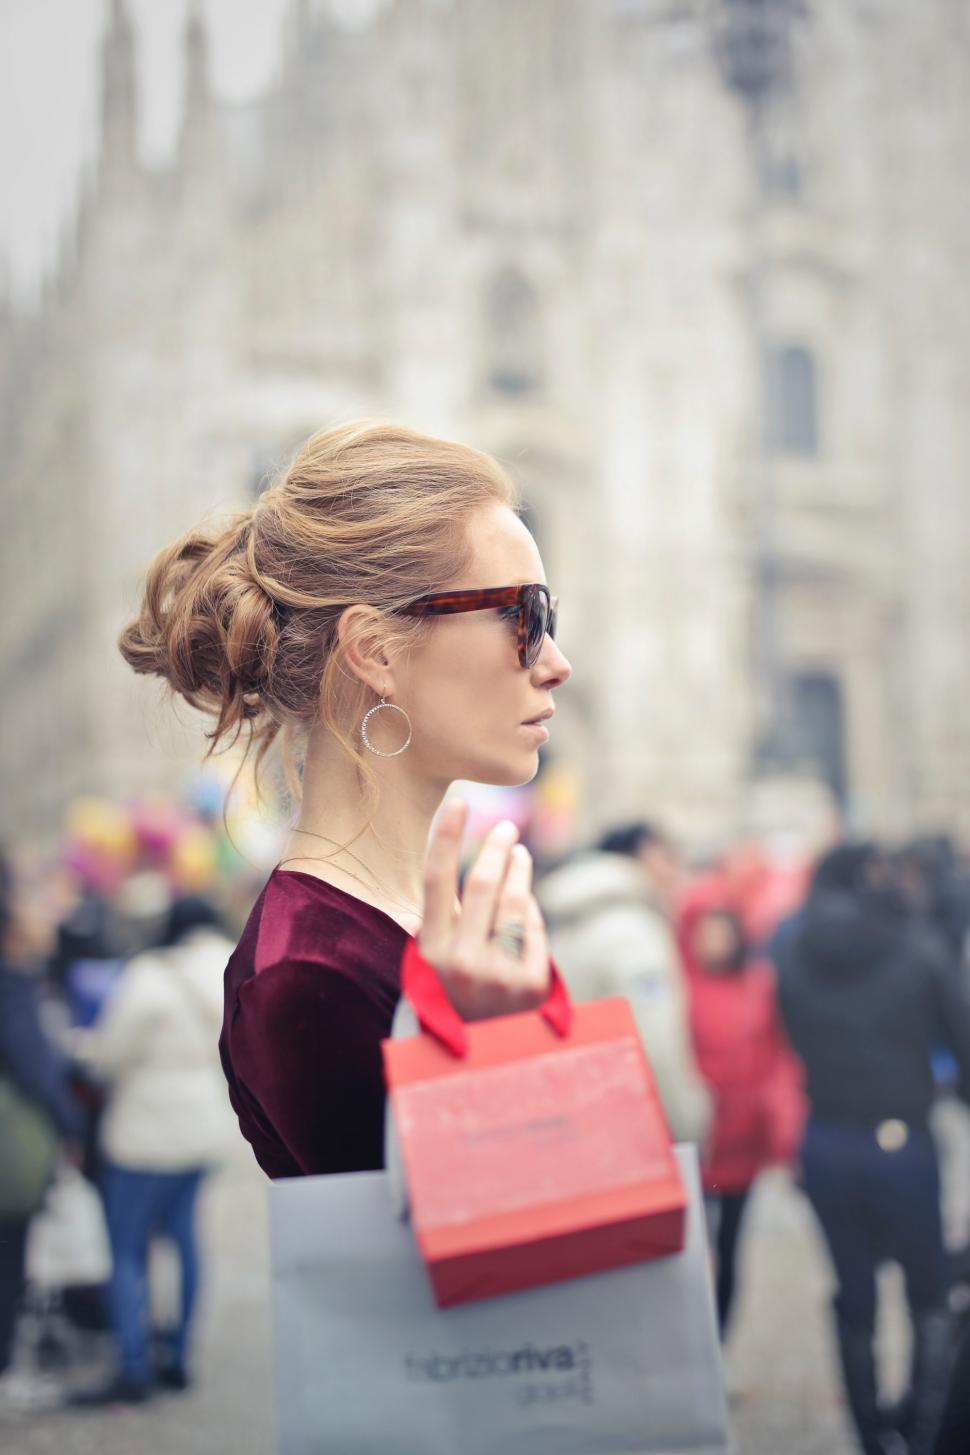 Download Free Stock HD Photo of A young blond woman with elegant hair bun holding shopping bags Online